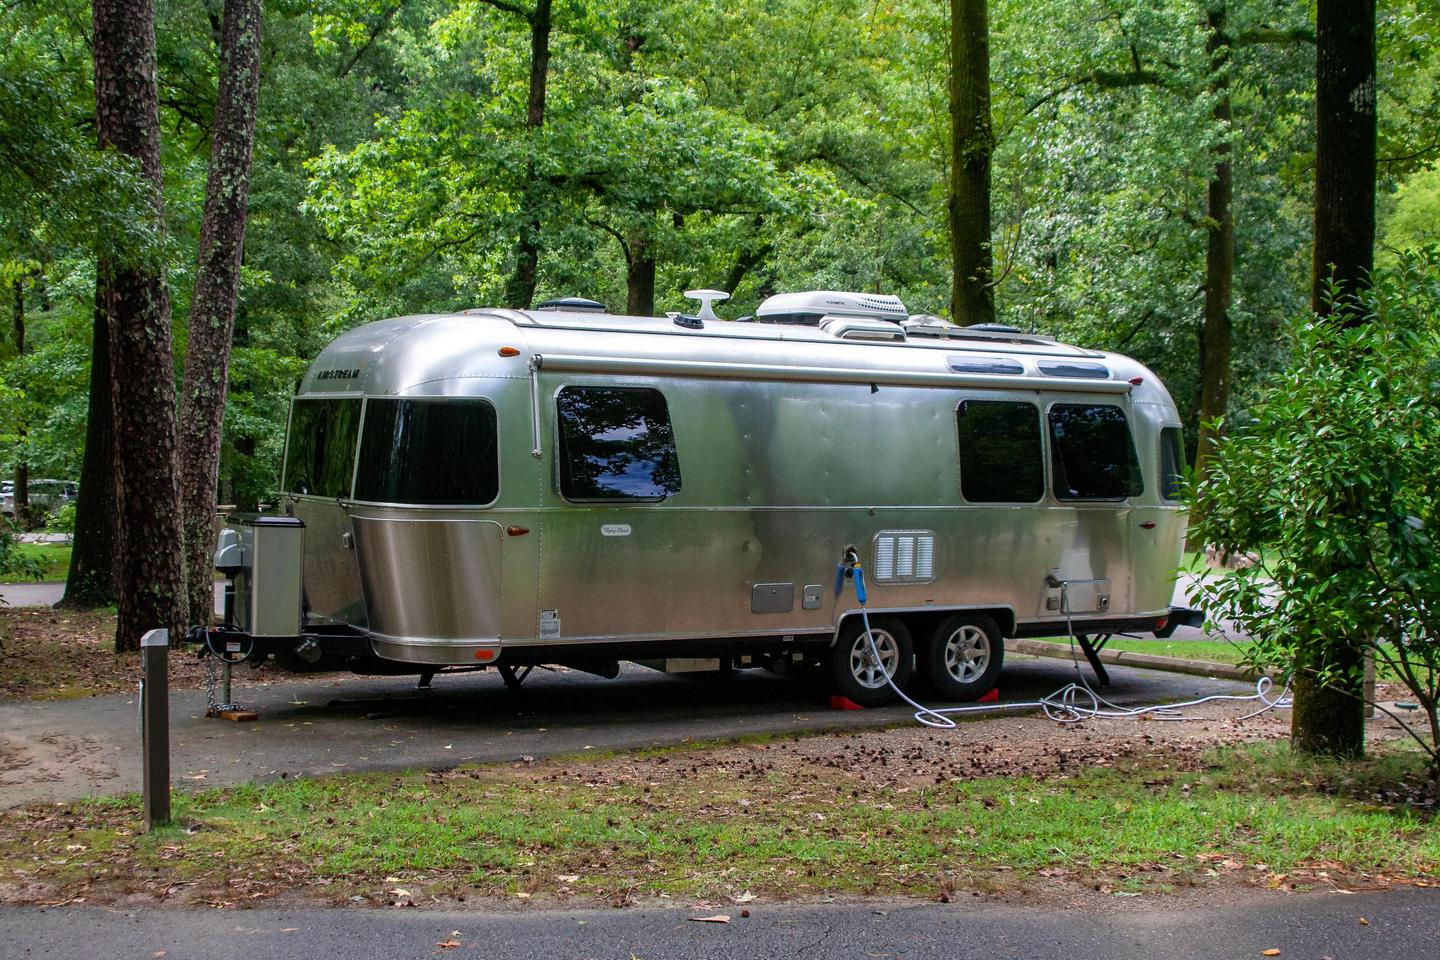 RV CampingAll sites come with full RV hookups for electric and water.